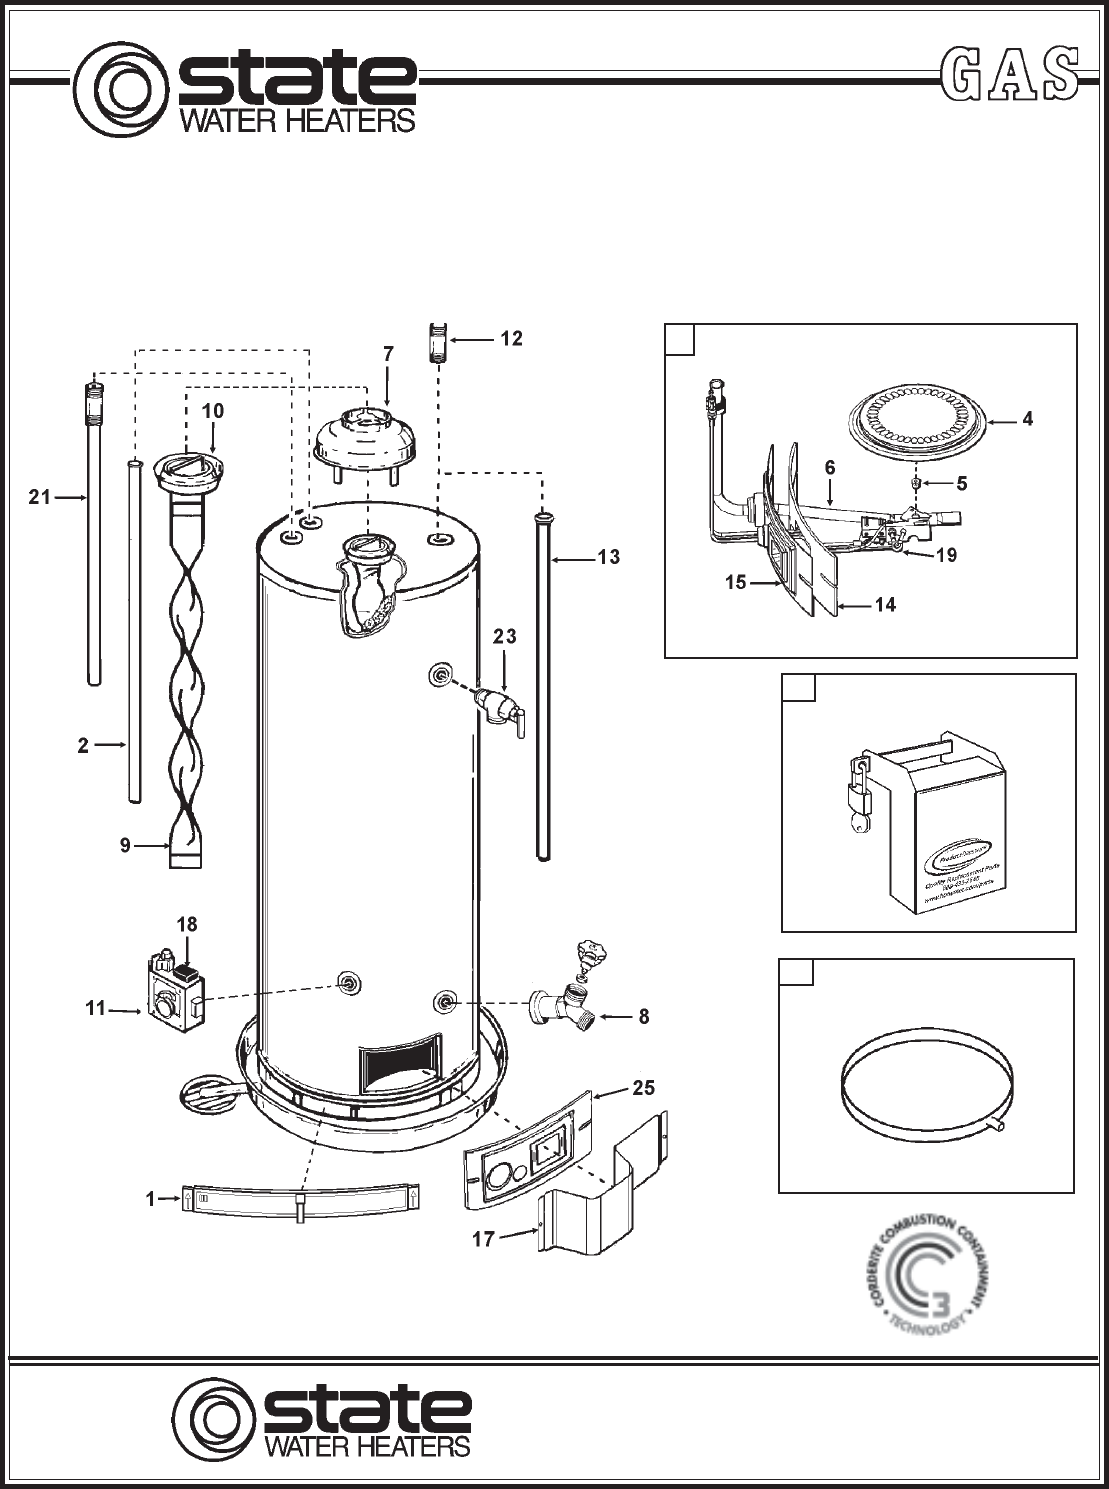 state industries gs650 water heater user manual